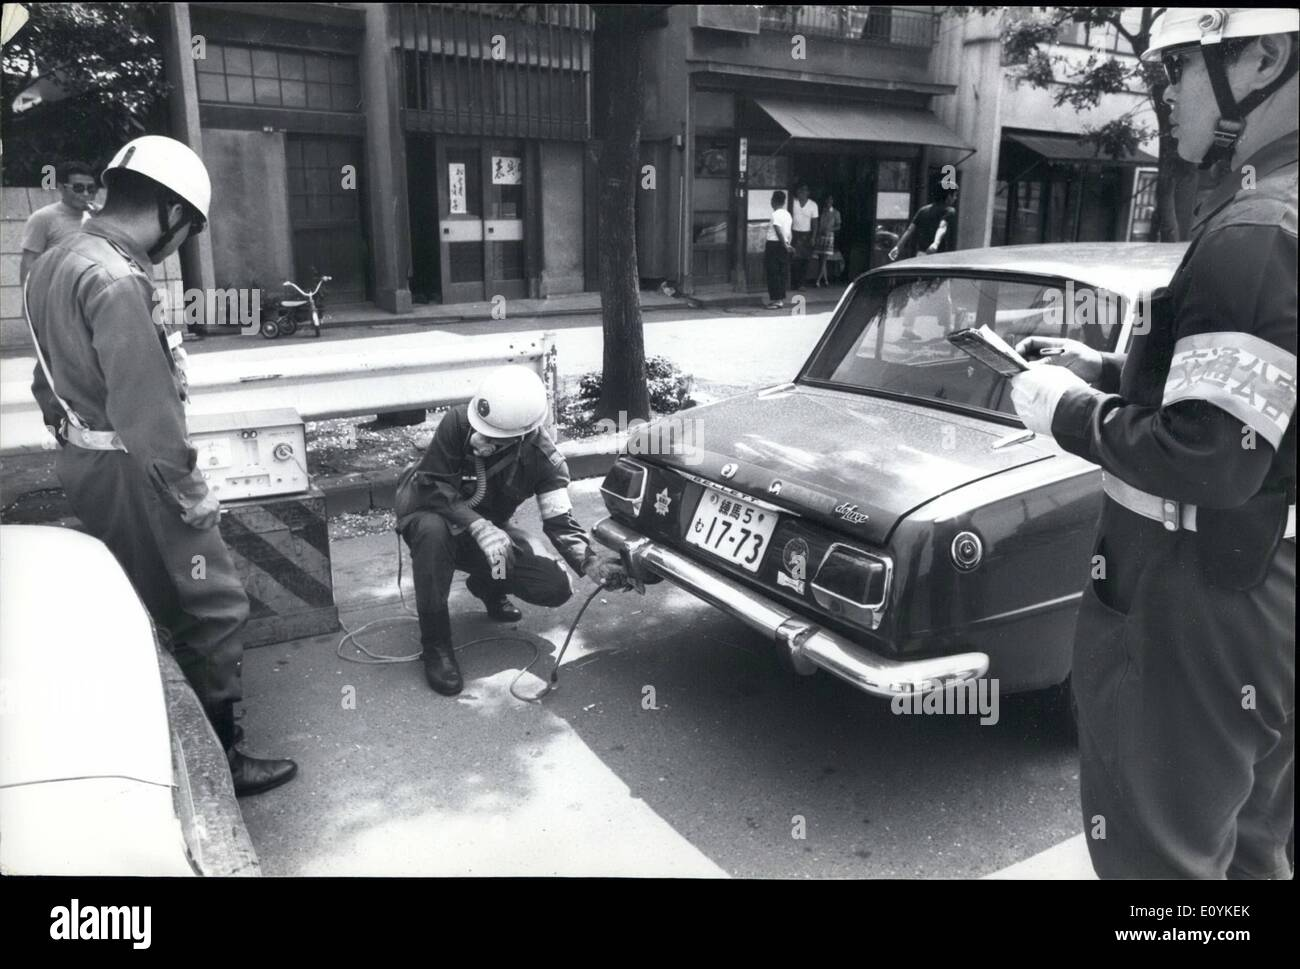 Aug. 08, 1970 - Tokyo Police Check Car Exhausts: Tokyo traffic policemen wearing gets masks are carrying out daily check of automobile exhausts in an attempt to control air pollution. On their first check with measuring instruments plugged into the exhaust pipes and coupled to gauges, 40 percent emitted exhaust gas with higher CO levels than the legal limit of 5.5 per cent, when the engine is idling. Owners of cars that issued high levels of CO were ordered to tune up their engines immediately, - Stock Image